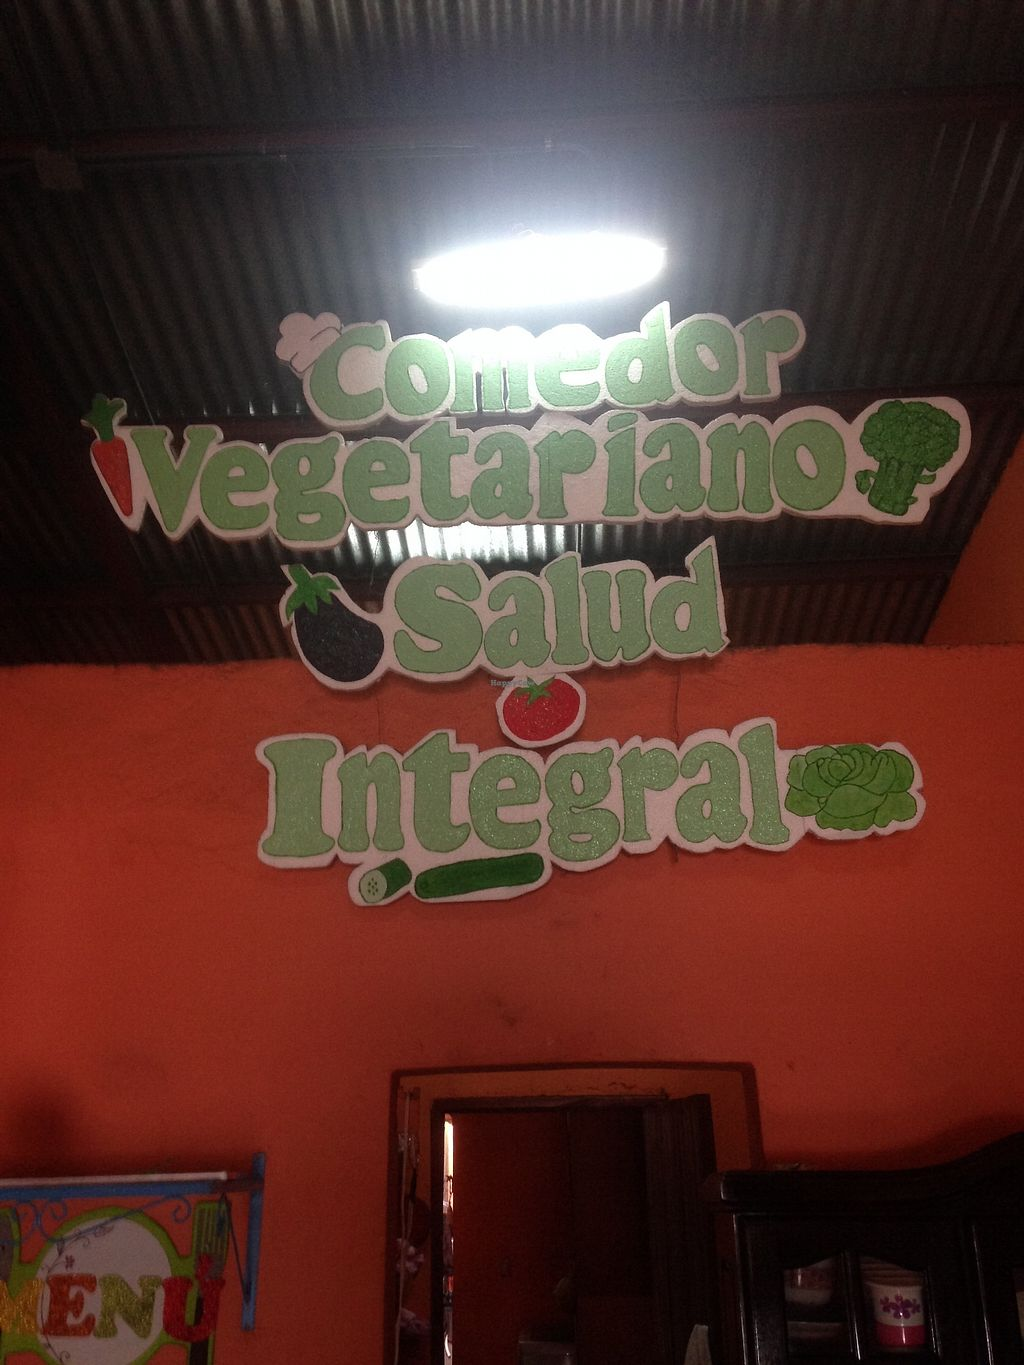 """Photo of Comedor Vegetariano Salud Integral  by <a href=""""/members/profile/Stubler"""">Stubler</a> <br/>Really friendly and welcoming hosts <br/> October 15, 2017  - <a href='/contact/abuse/image/102923/315514'>Report</a>"""